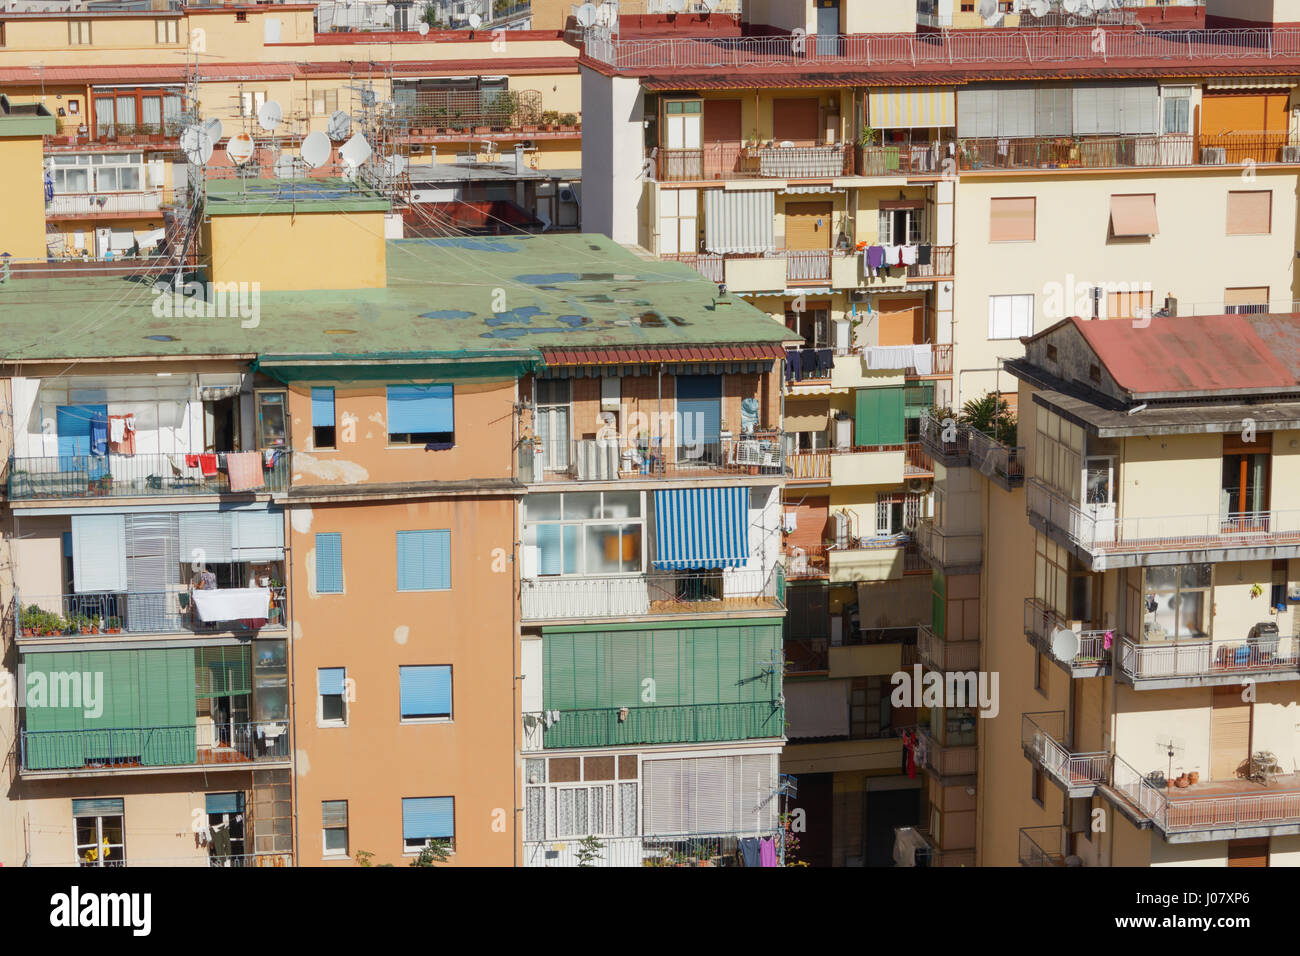 Apartment blocks crowded together Stock Photo